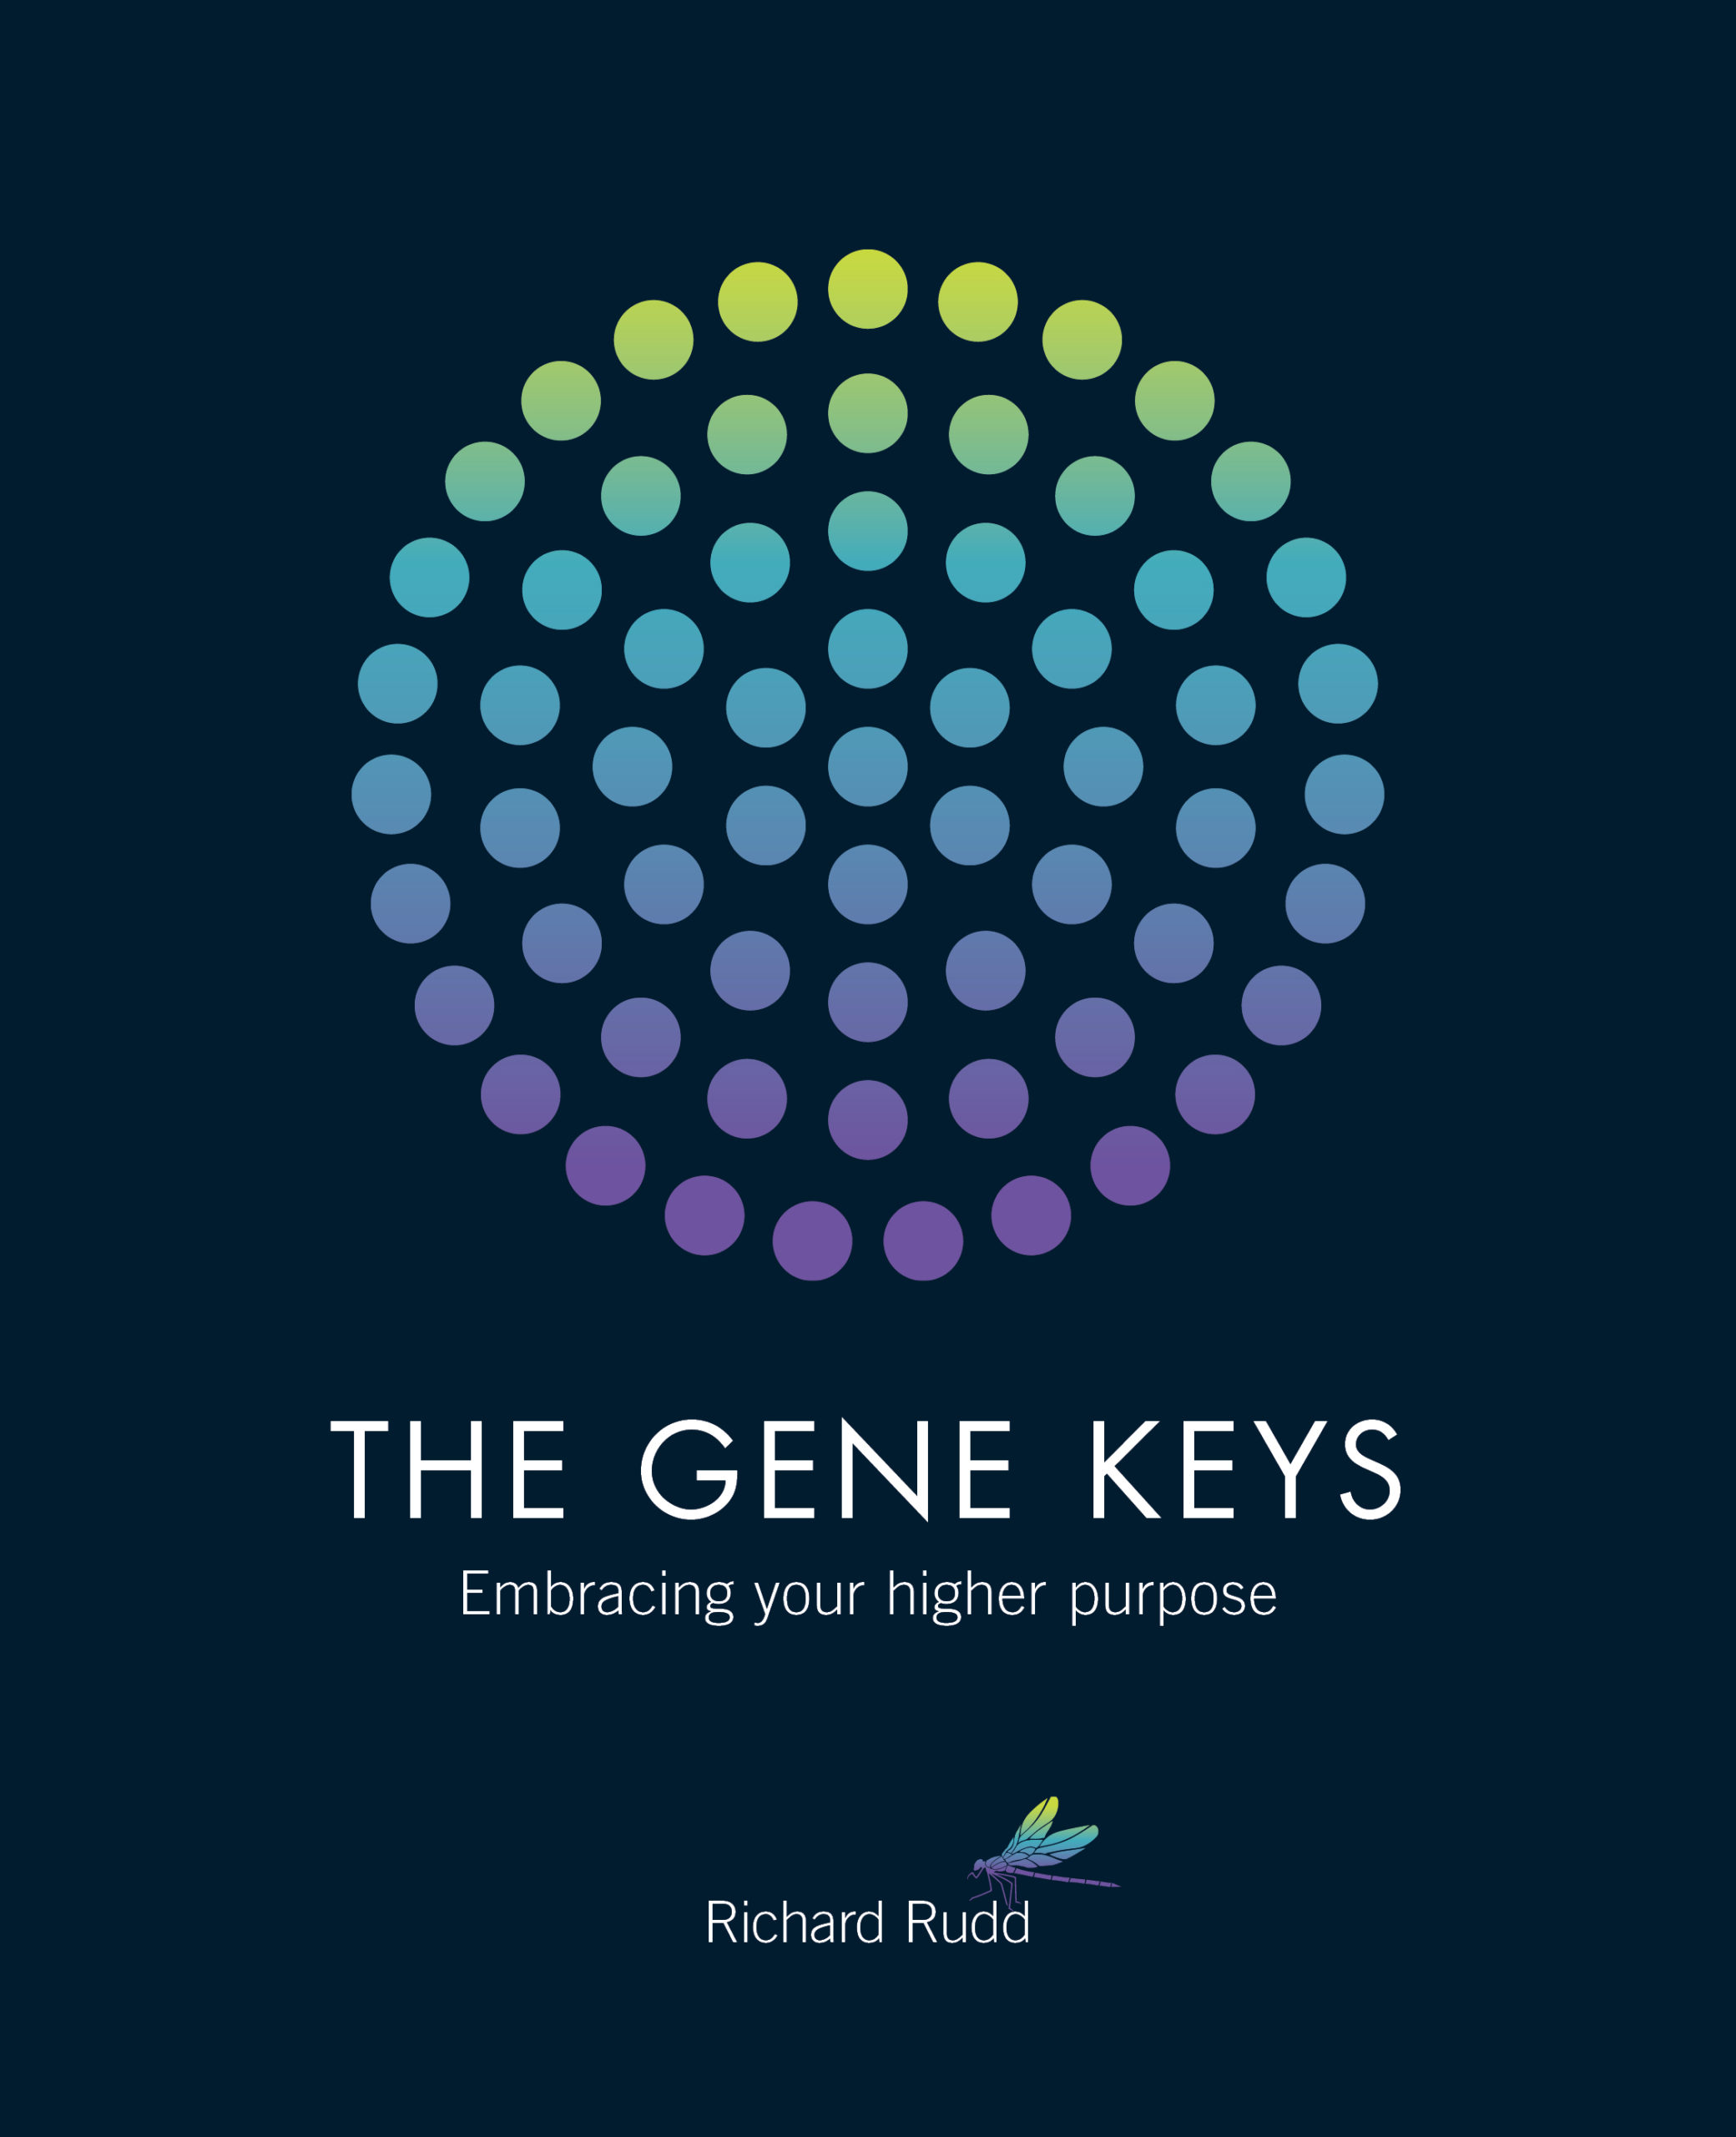 Gene Keys: Unlocking the Higher Purpose Hidden in Your DNA by Richard Rudd